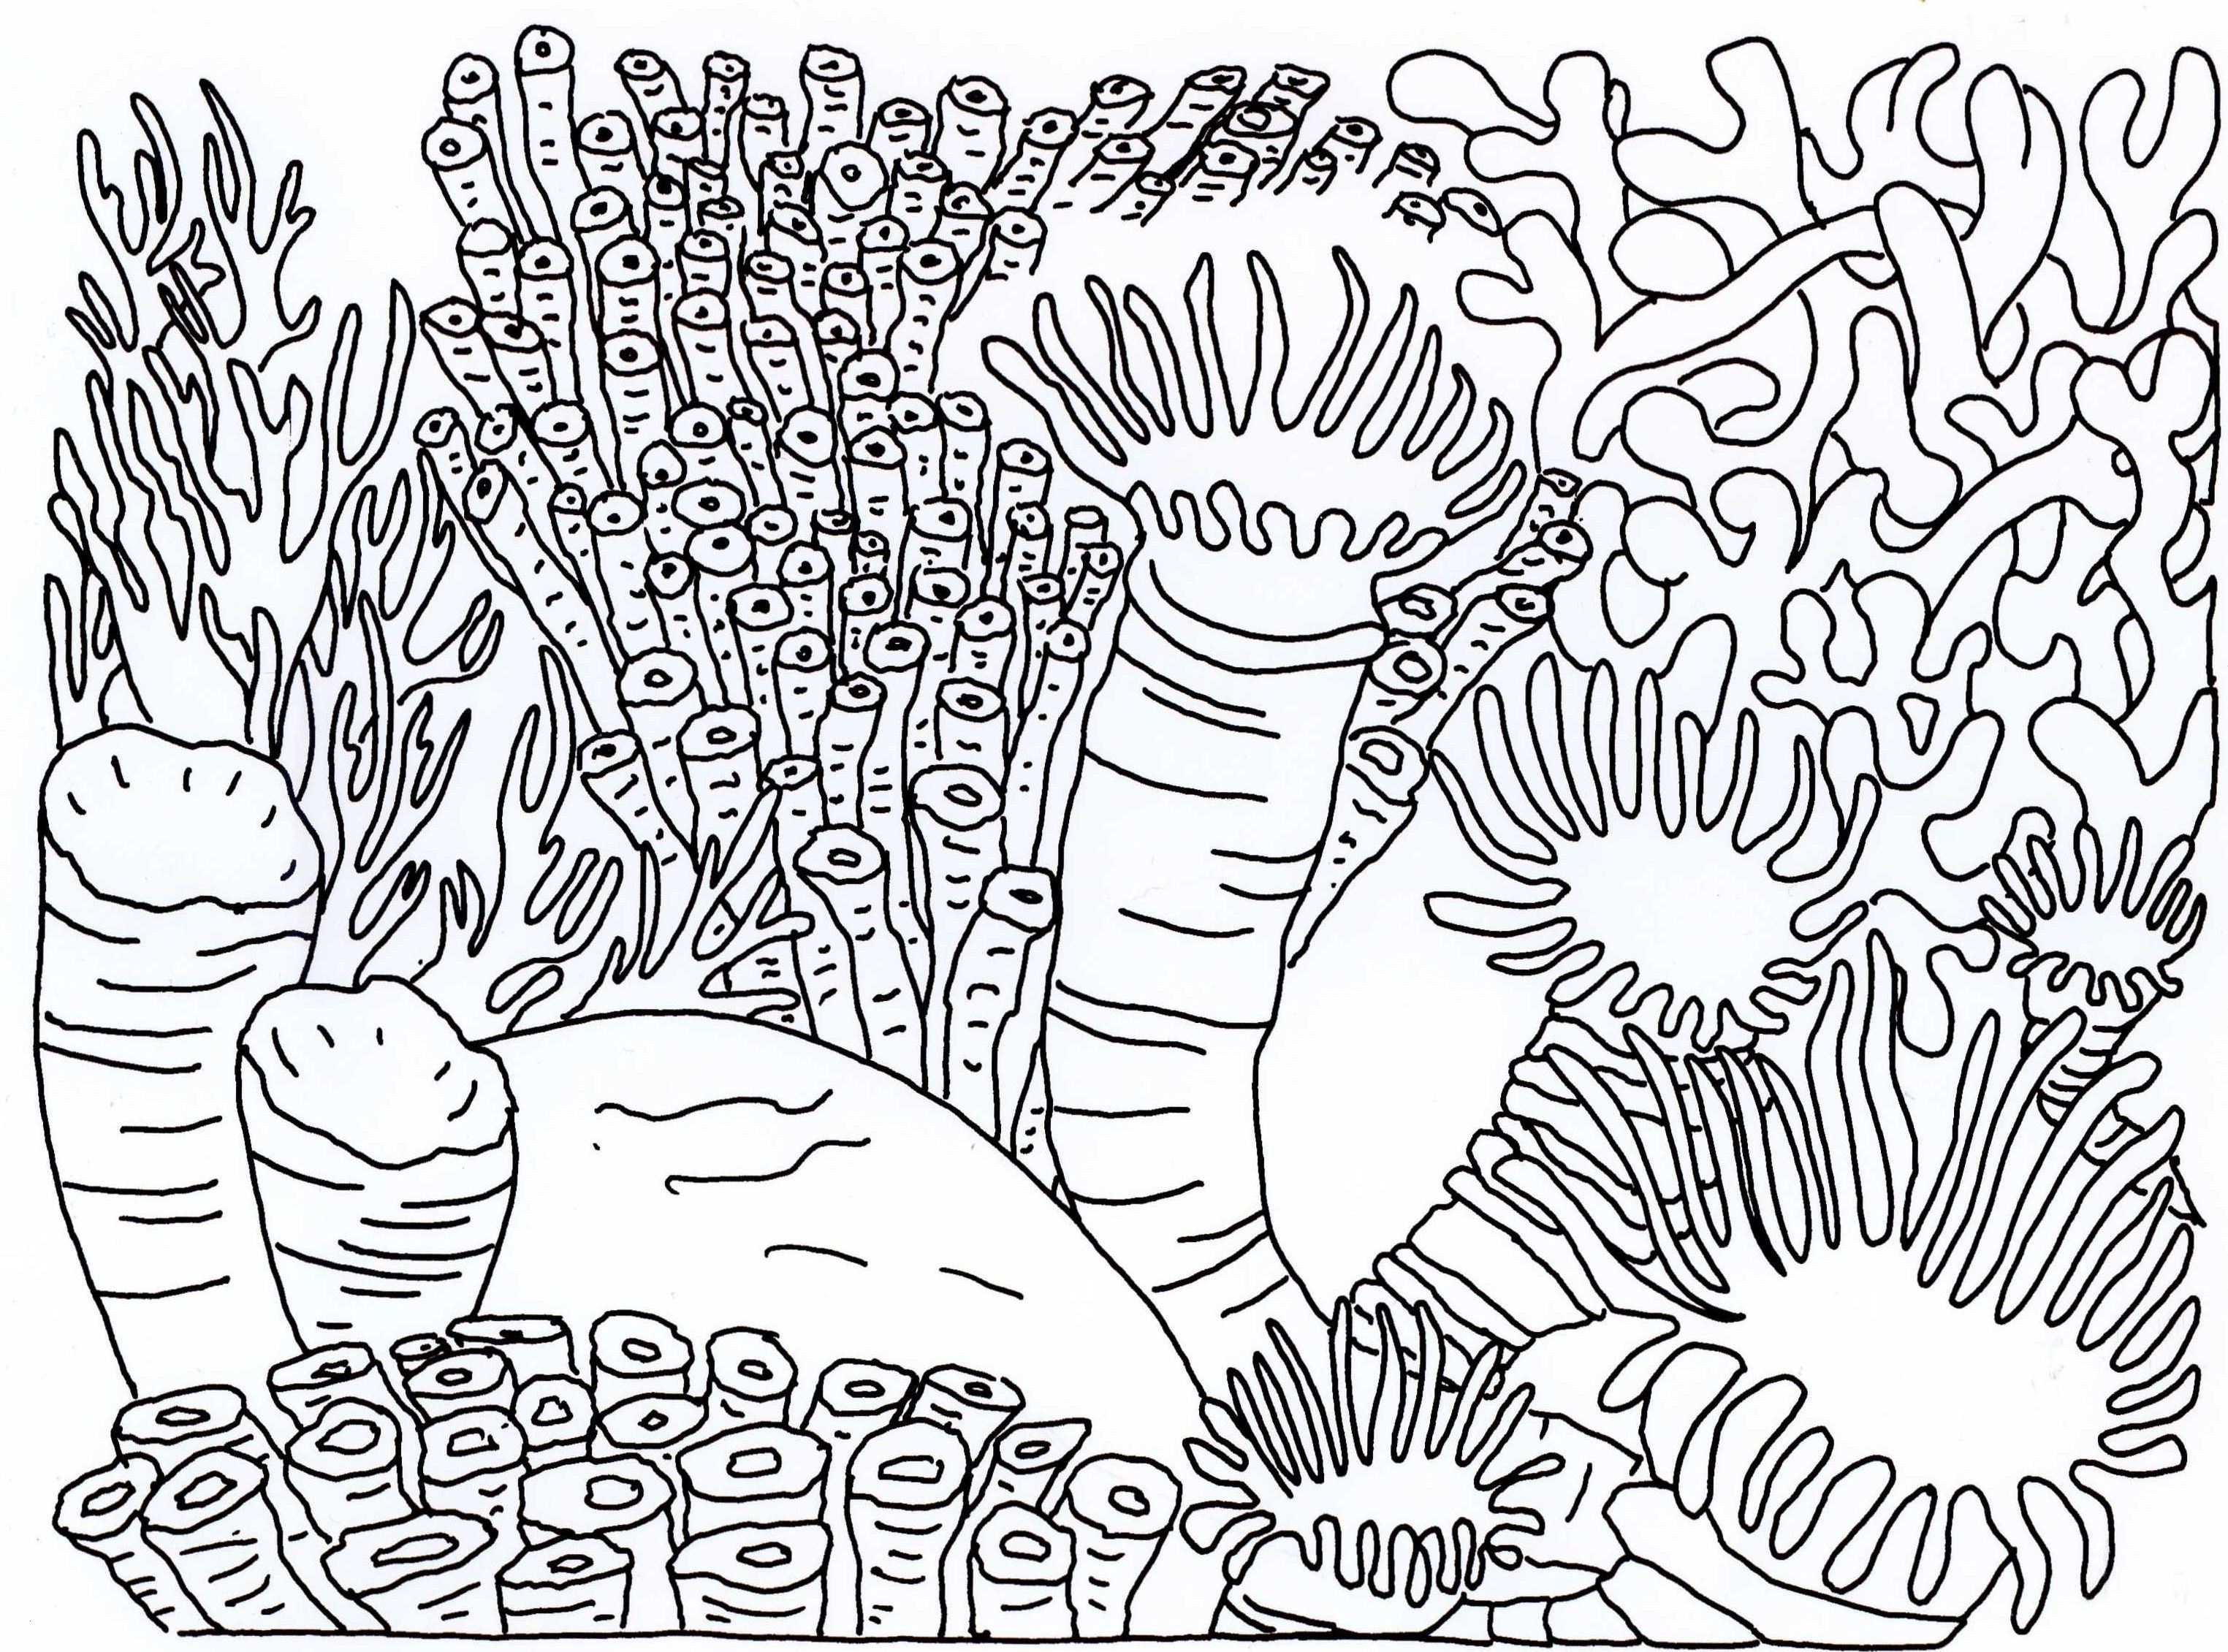 Coral Reefs Coloring Pages - Reef Coloring Pages Coral Reef Coloring Page Unique Coral Reef